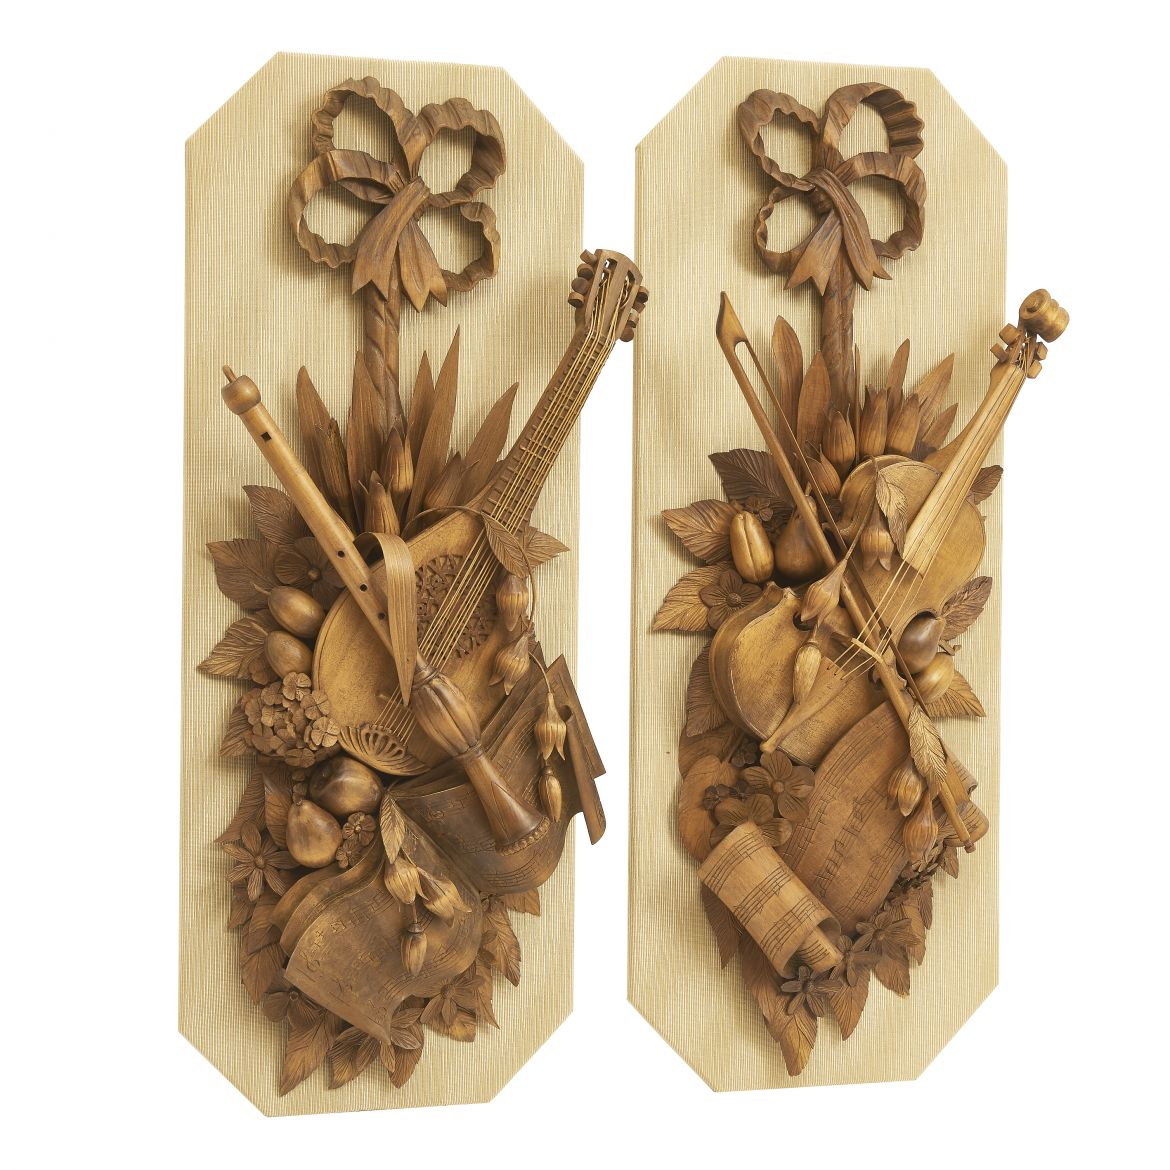 Carved Wood Music Themed Trophies In The Style Of Grinling Gibbons